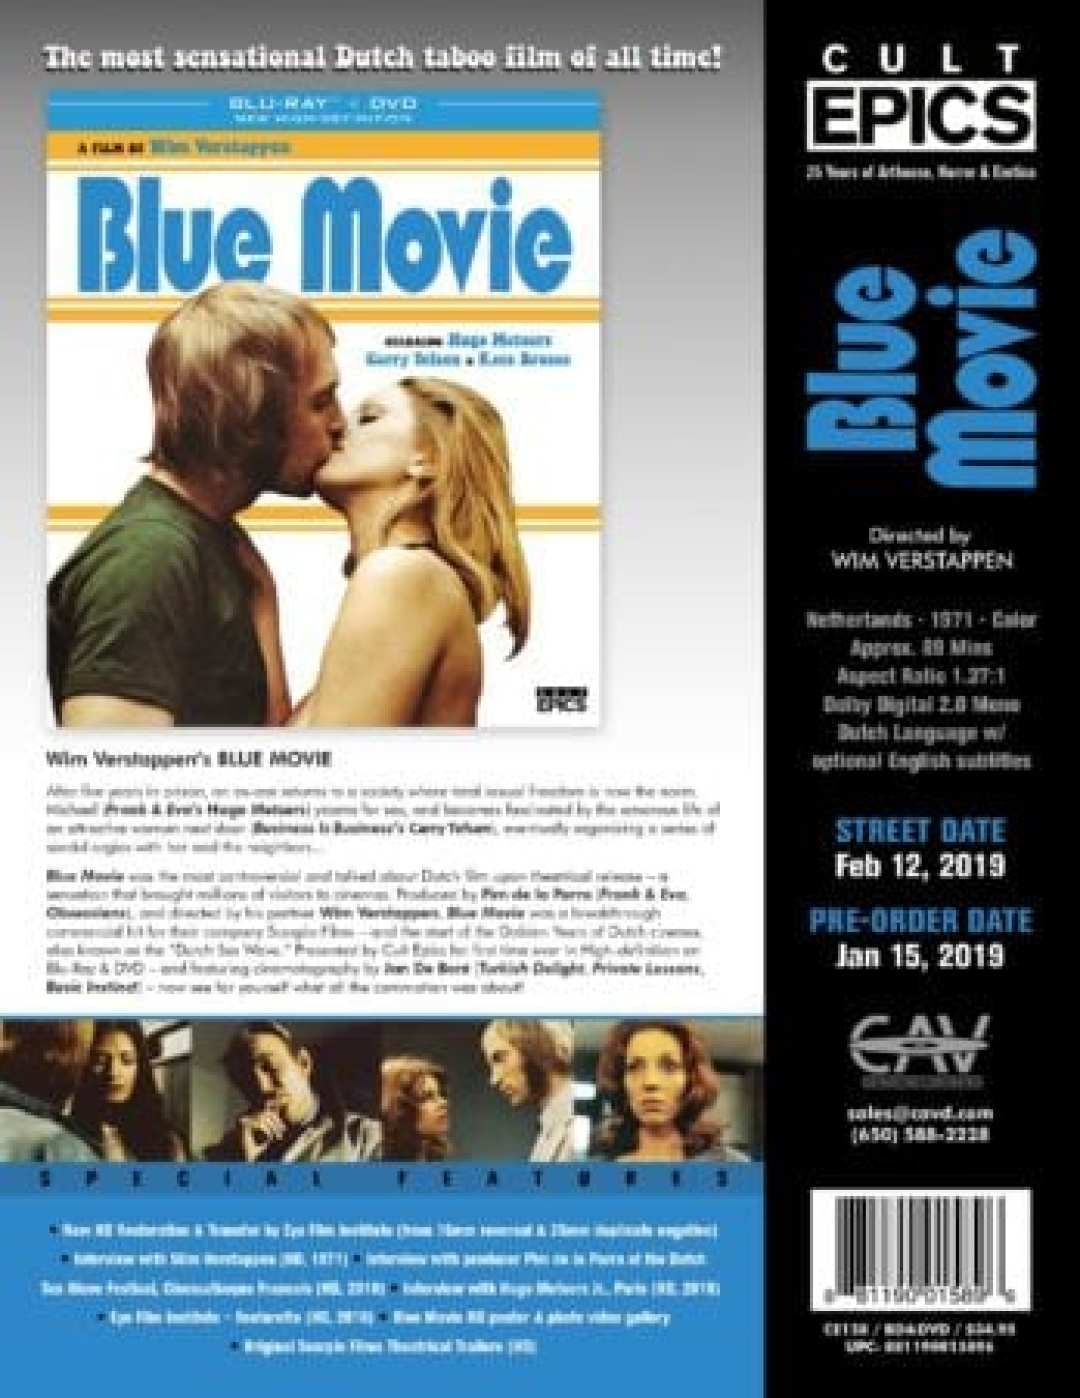 Blue Movie review: Sexual Freedom after Prison 5